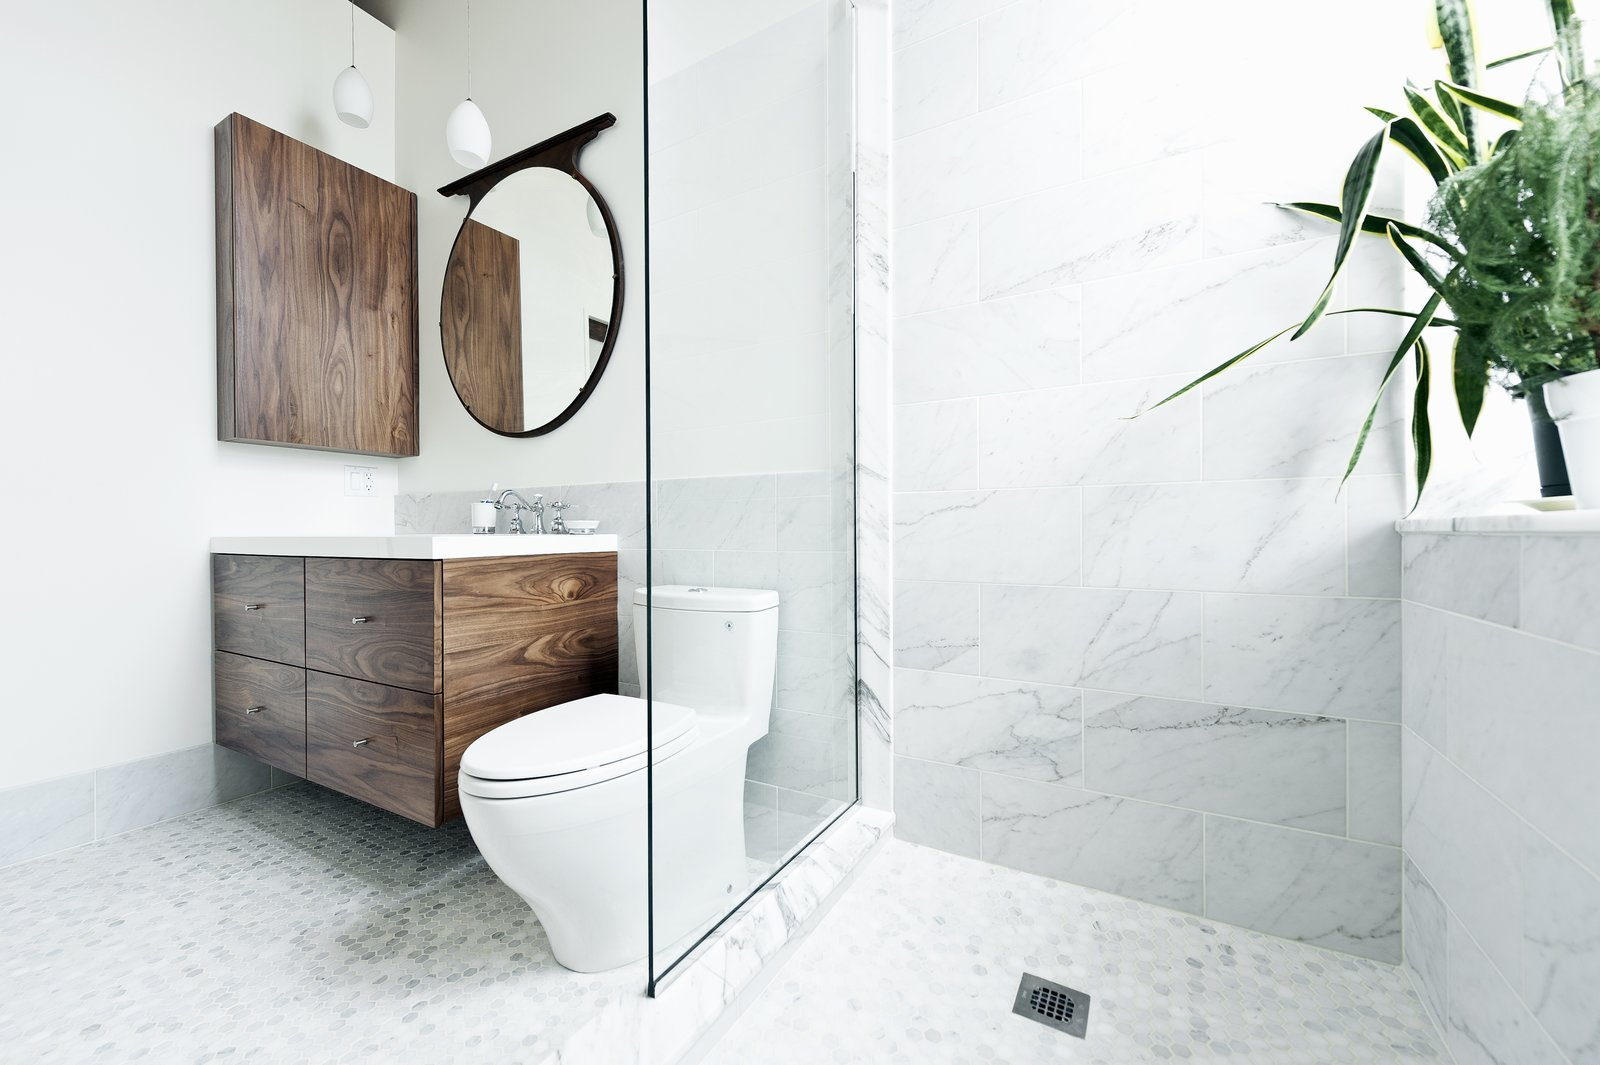 """Bath, Porcelain Tile, Pendant, Open, Engineered Quartz, Two Piece, and Marble """"What could I have that would feel luxurious, would make me feel really great?"""" muses one of the homeowners. """"My husband and I travel a lot in Europe, and we always loved the marble showers. So we put a marble shower up against the window."""" The sink and countertop are from Batimat, while the wall-hung vanity is another custom piece by Gepetto.  Best Bath Marble Pendant Photos from Brick House"""